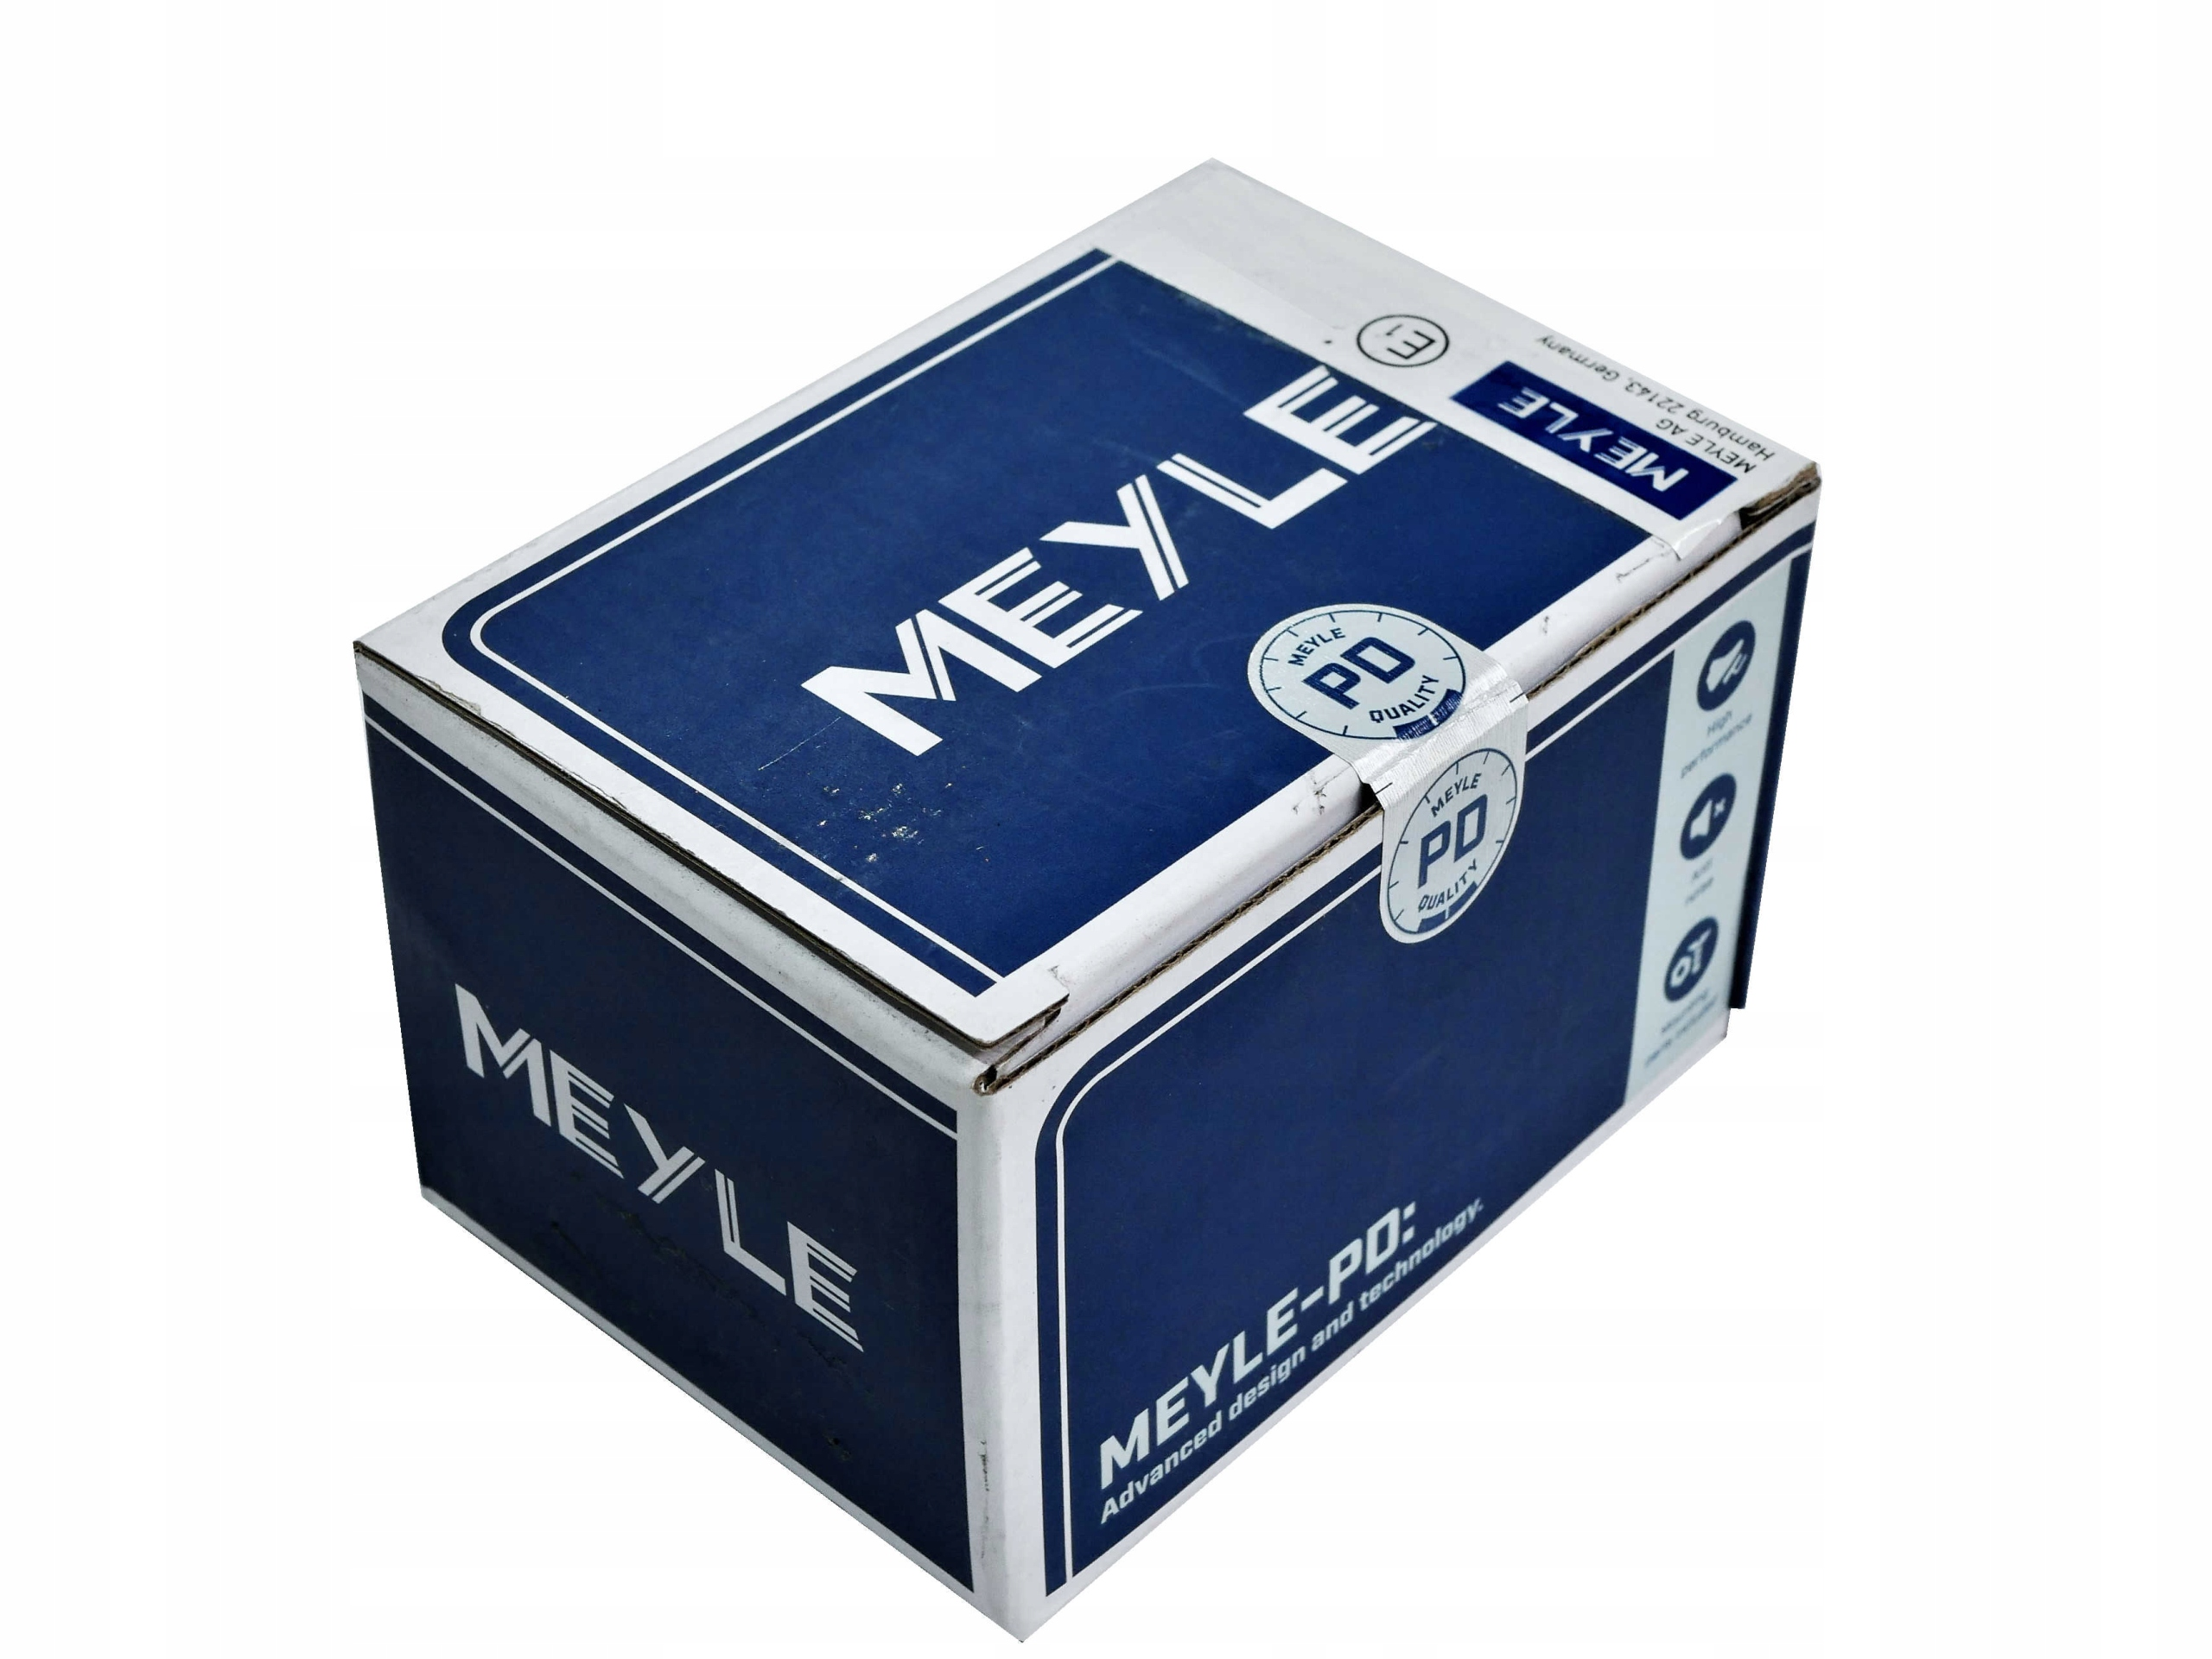 THE SUPPORT SHAFT MEYLE 100 151 0000/S + FREE OF CHARGE